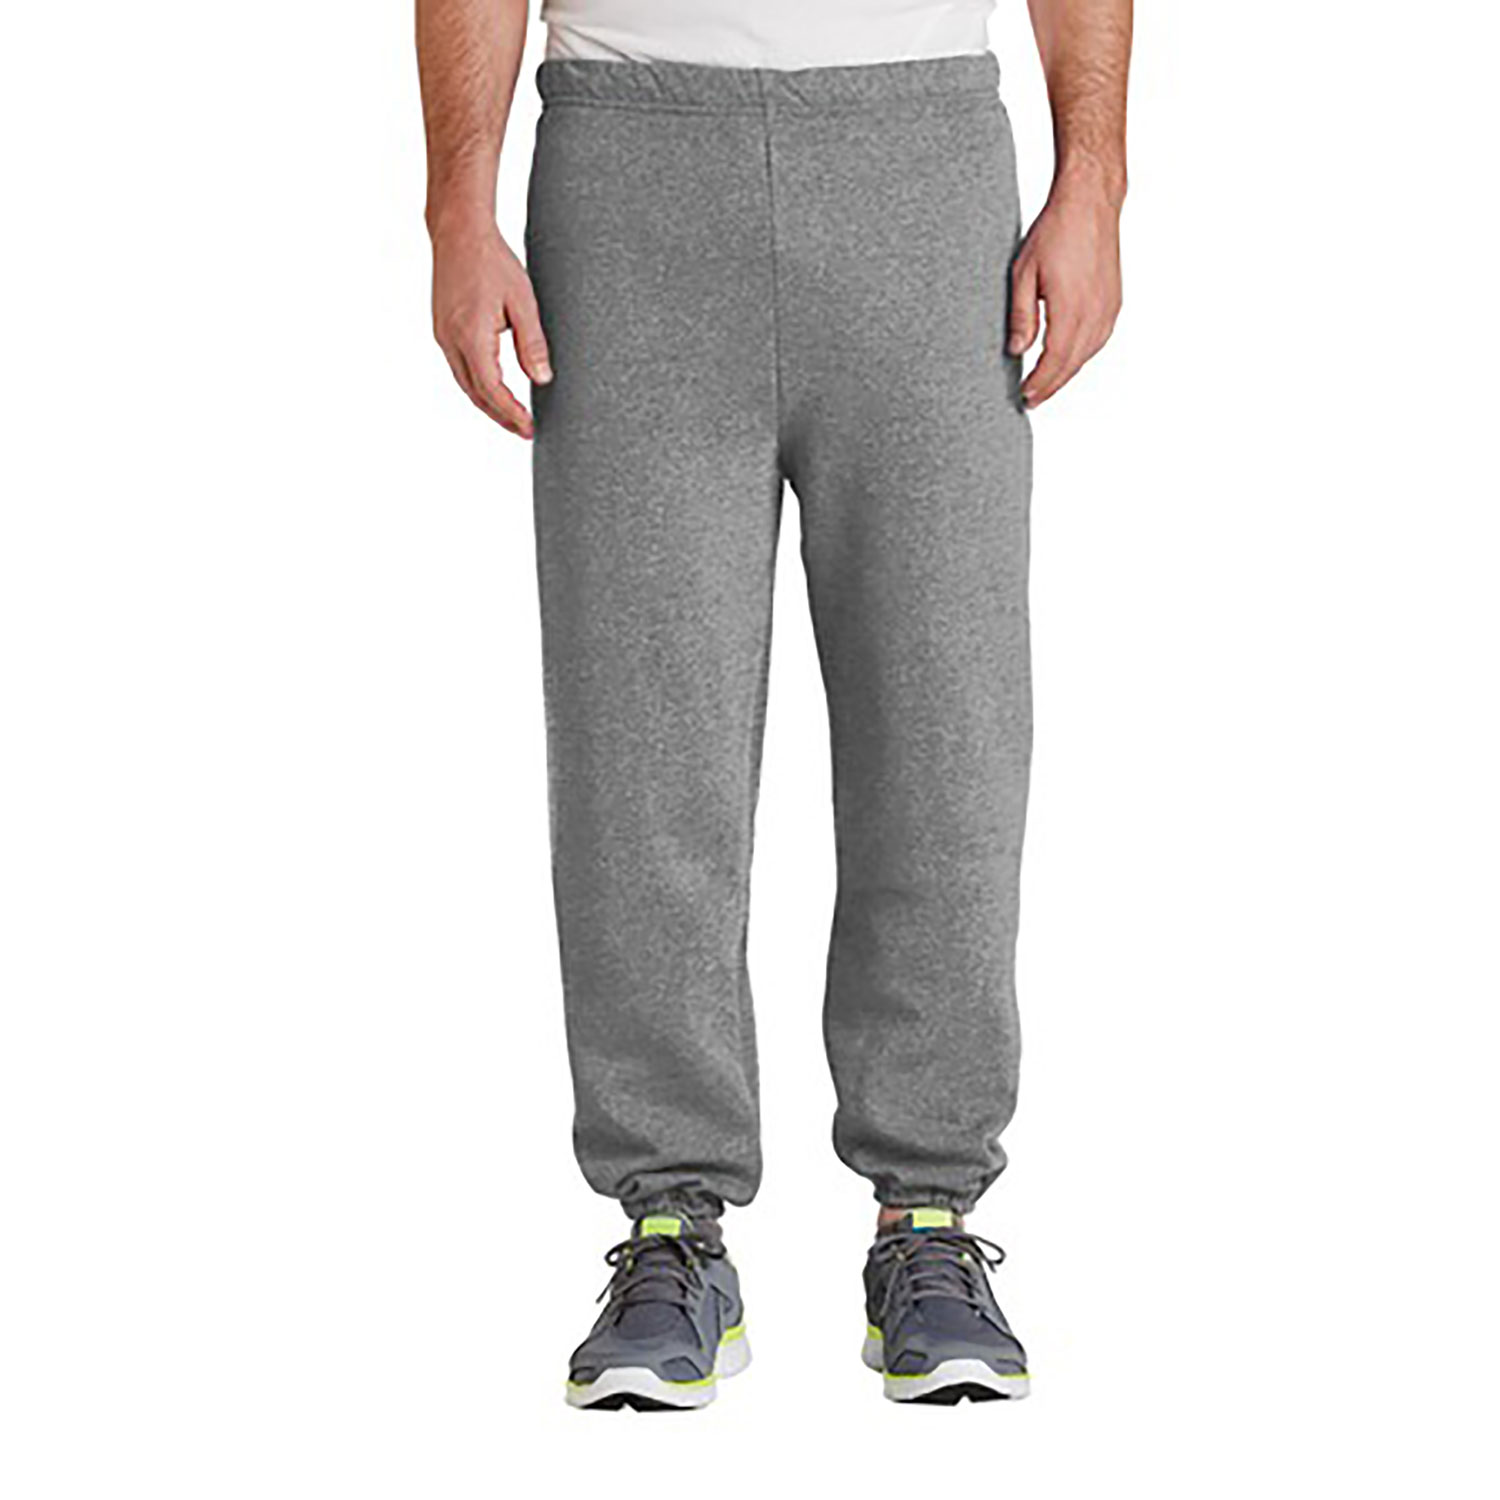 Jerzees NuBlend Fleece Sweatpants